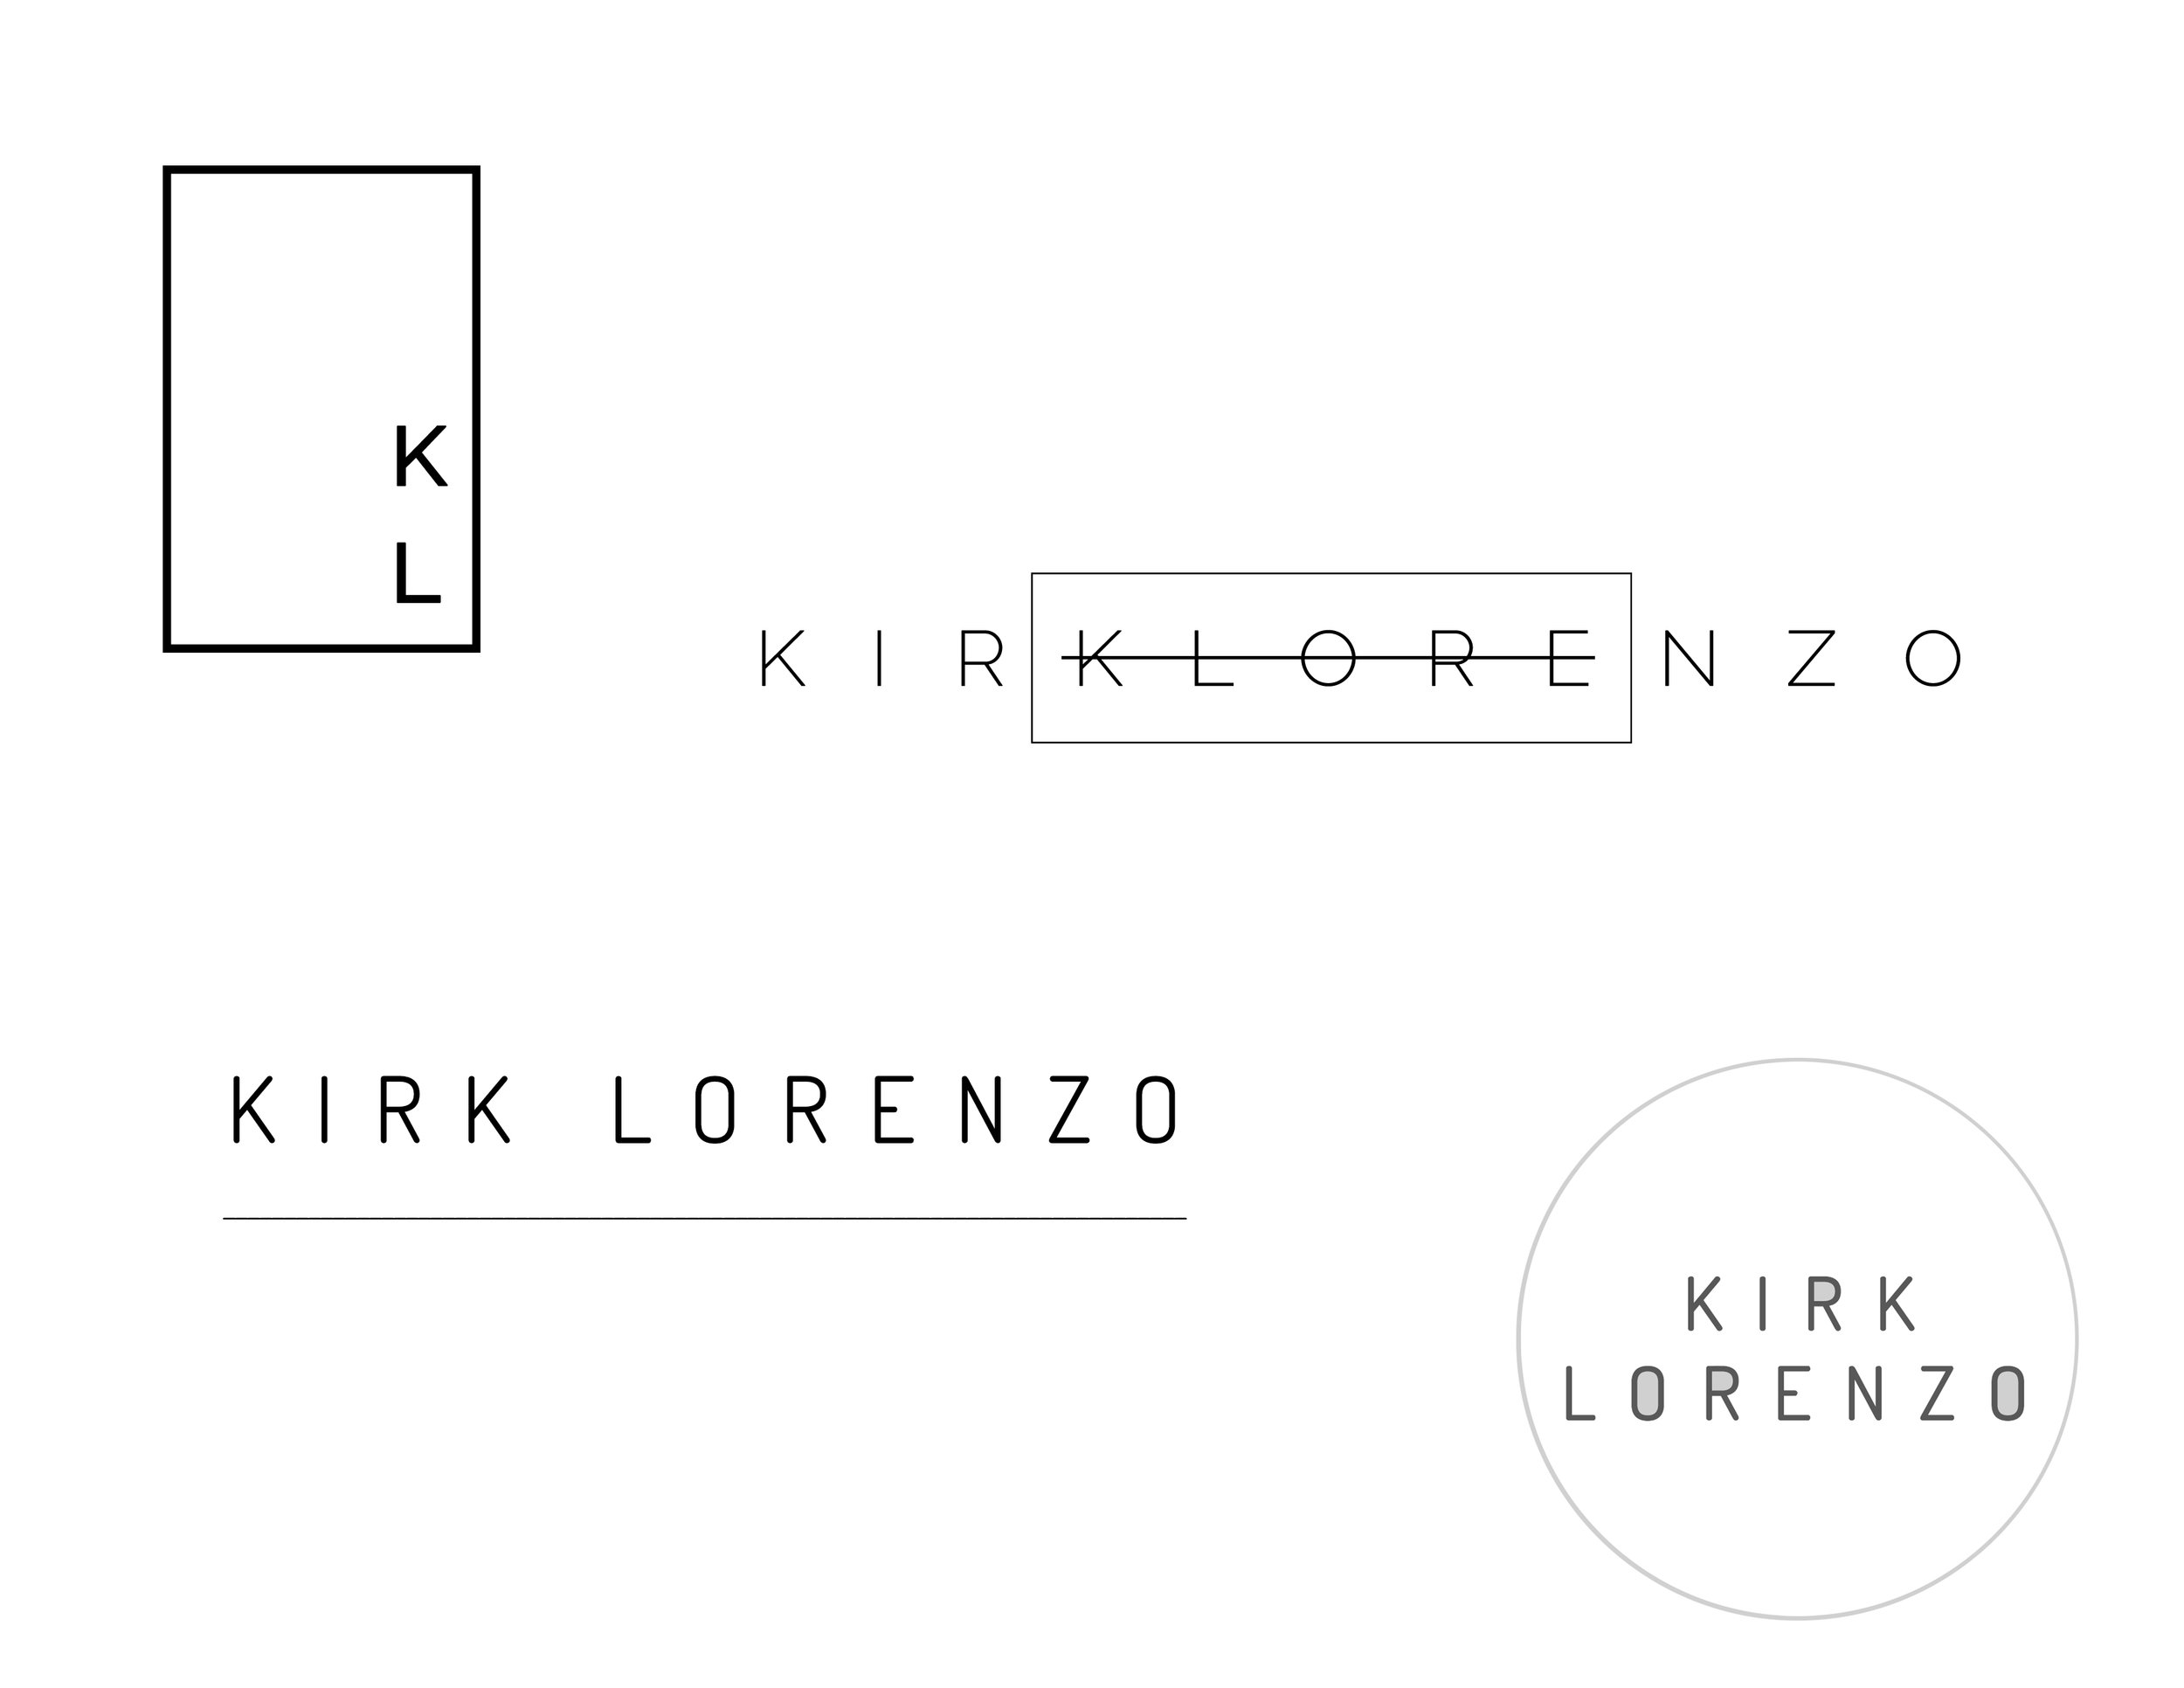 Logo history and variations for Kirk Lorenzo.